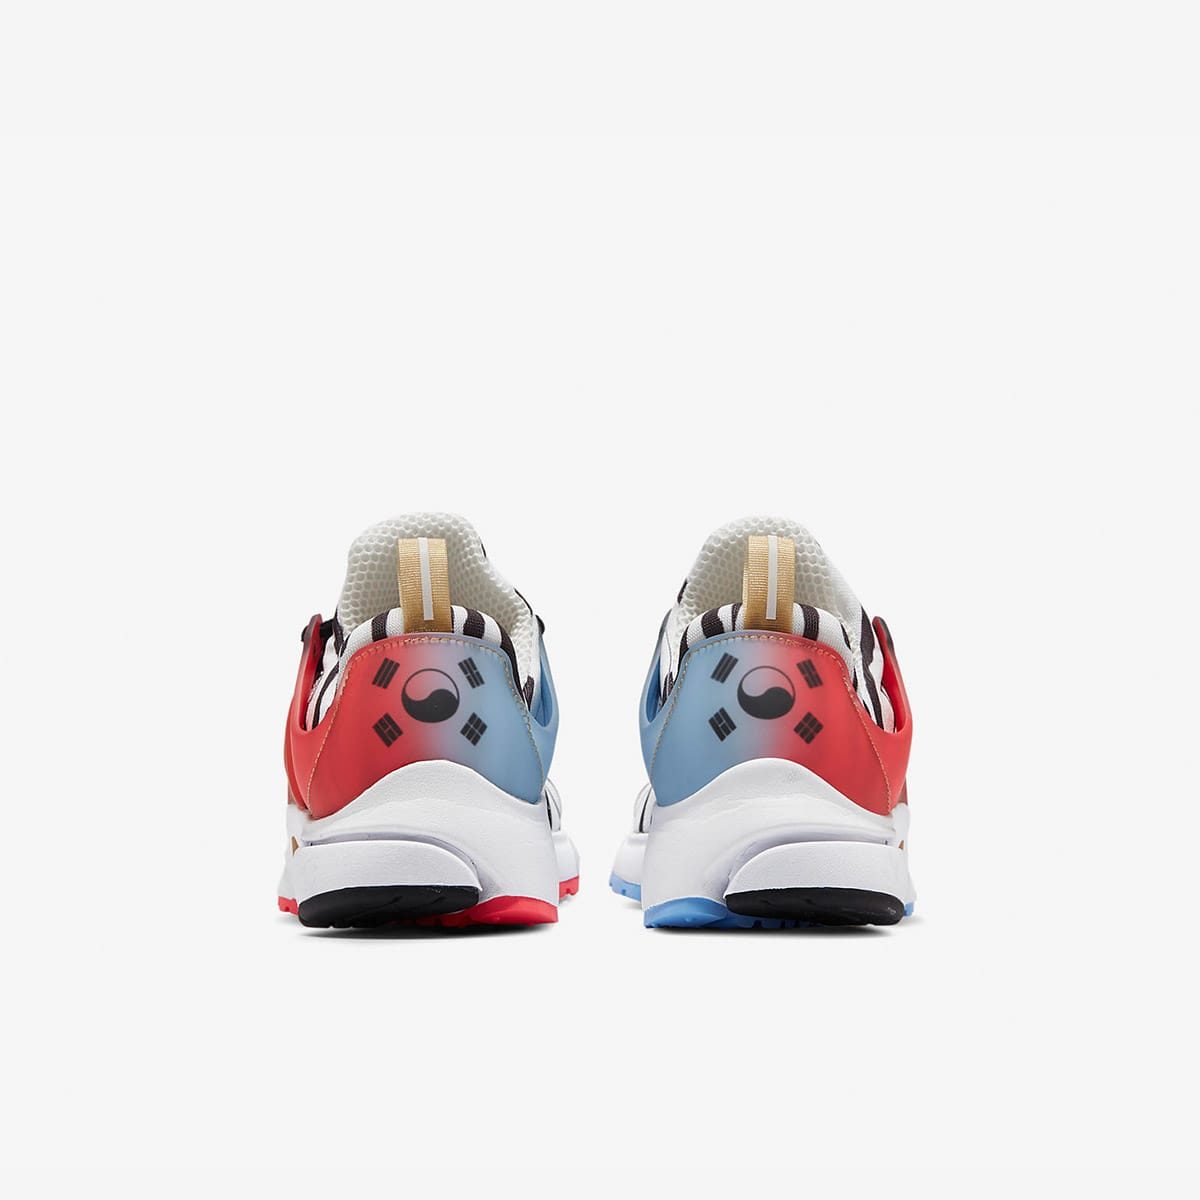 Nike Air Presto Korea - CJ1229-100